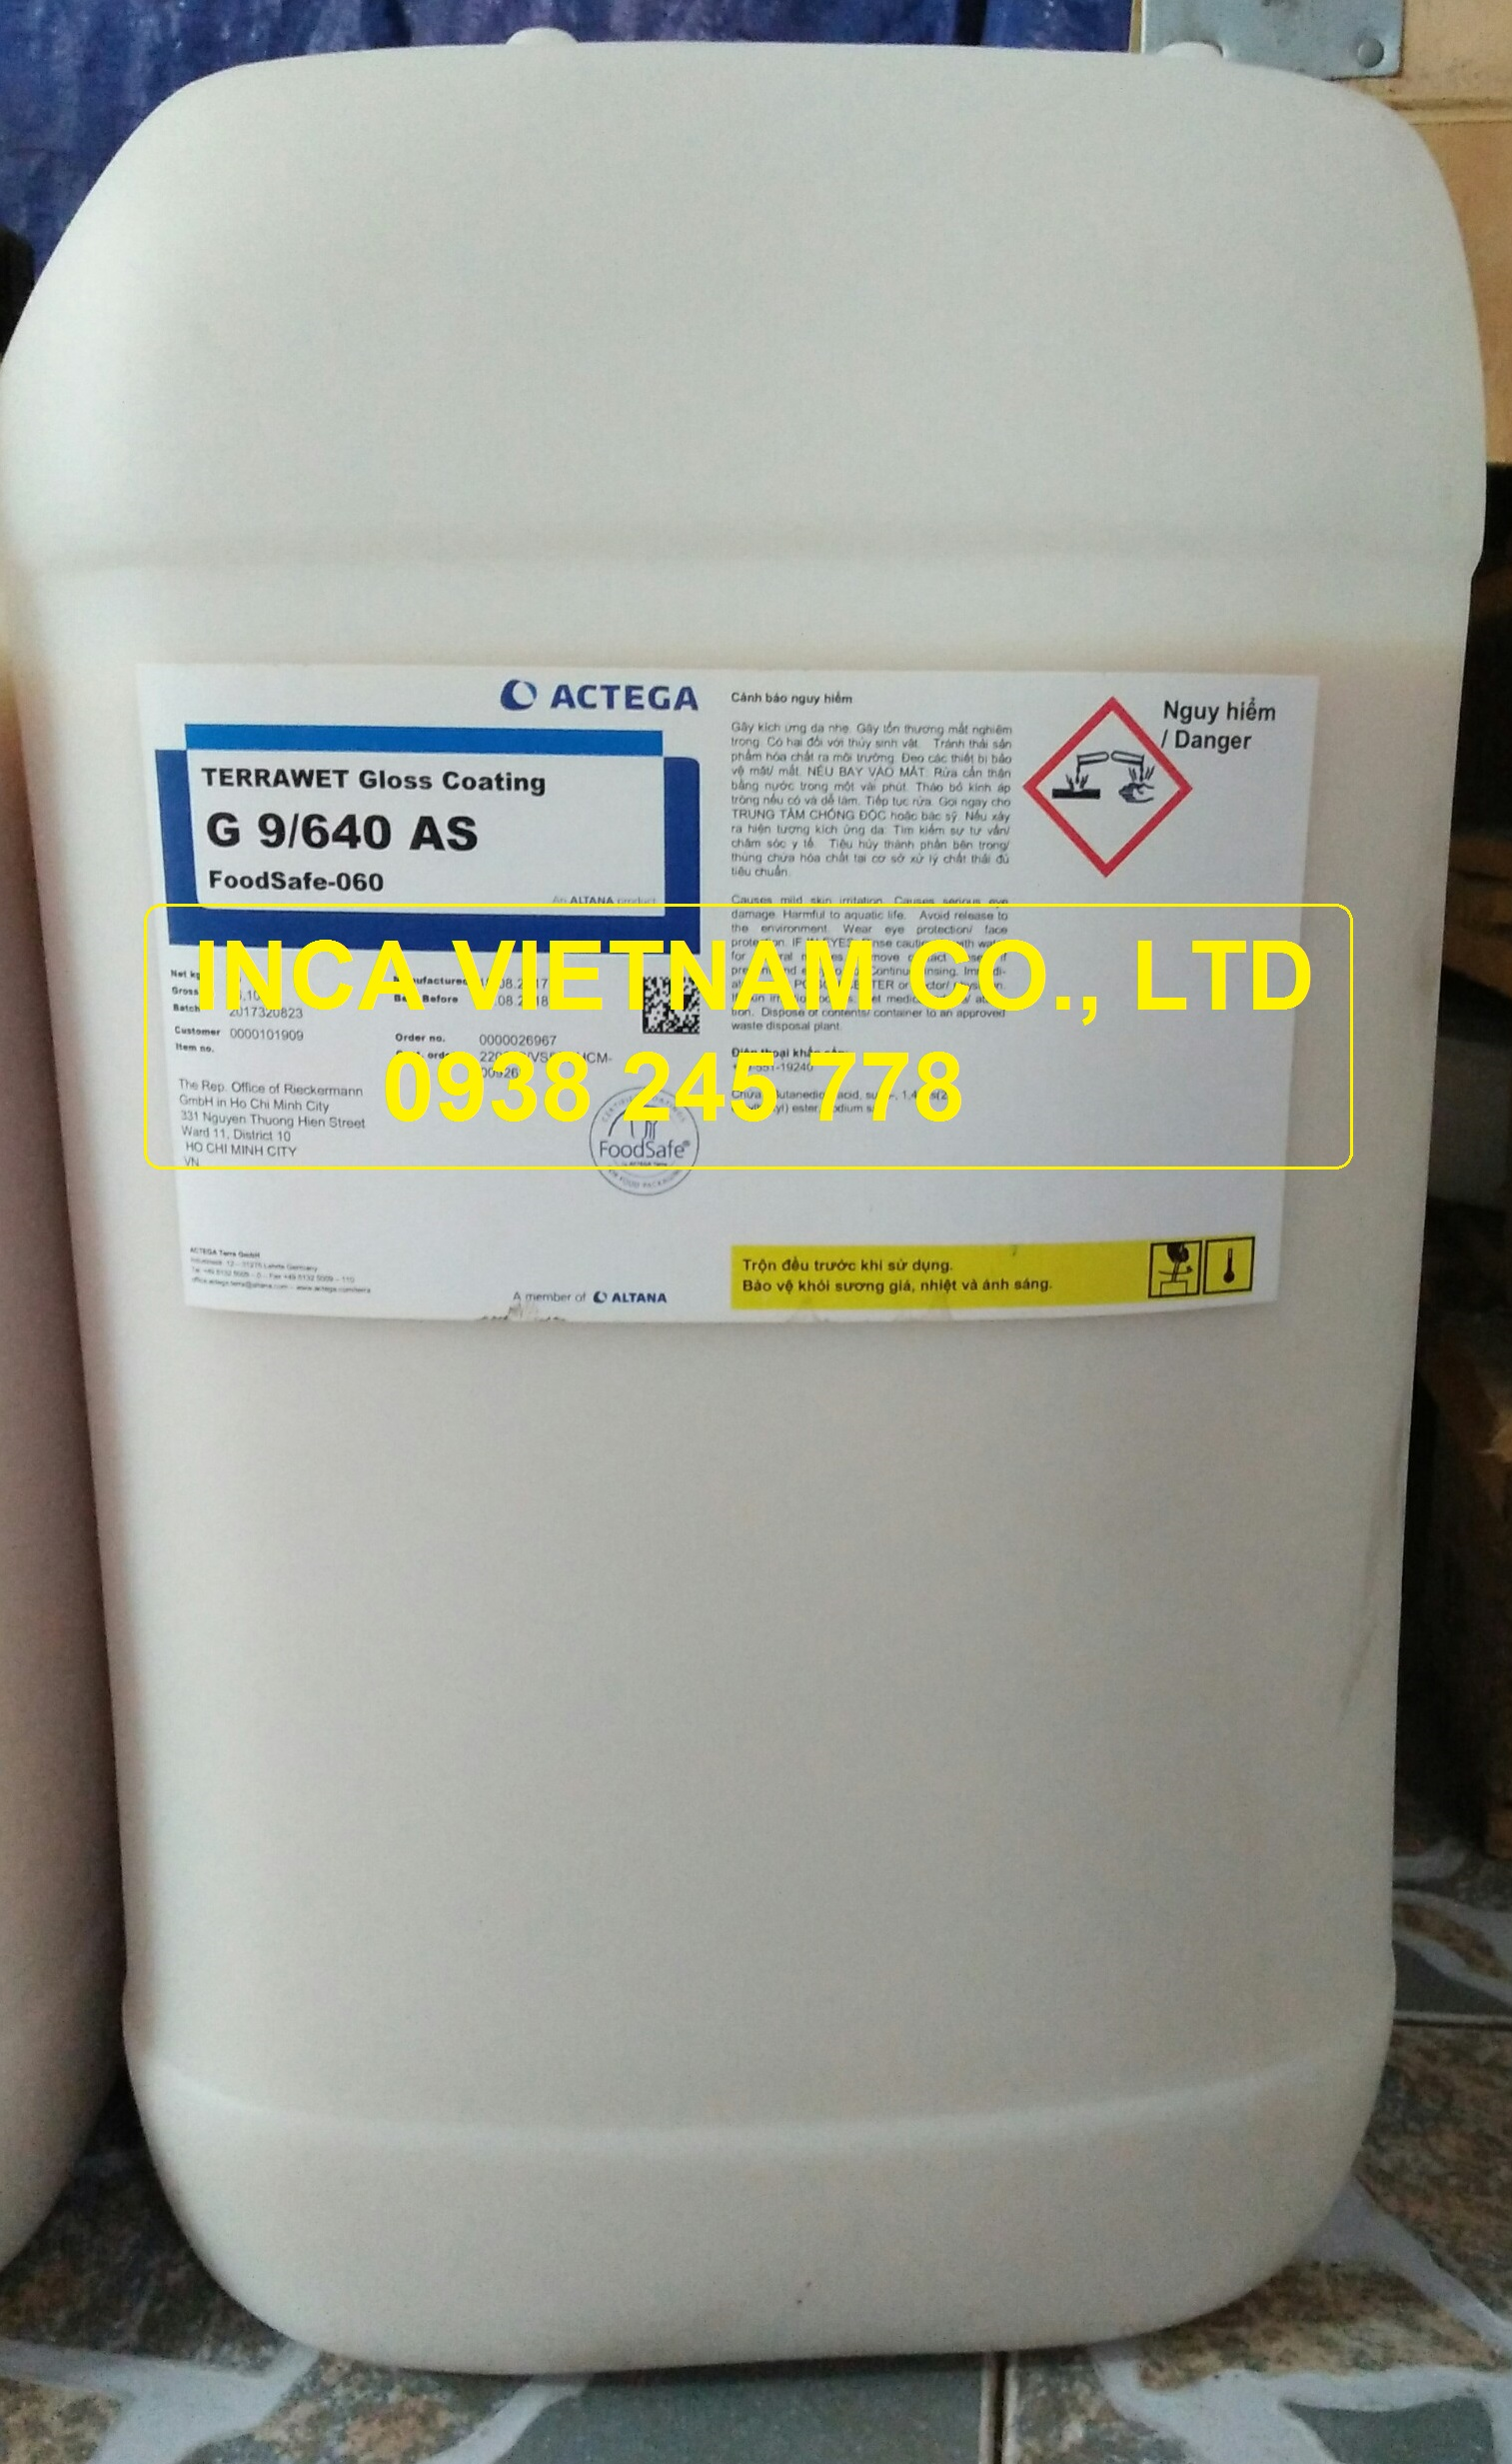 chat-phu-bong-actega-terrawet-gloss-coating-g-9640-as-foodsafe